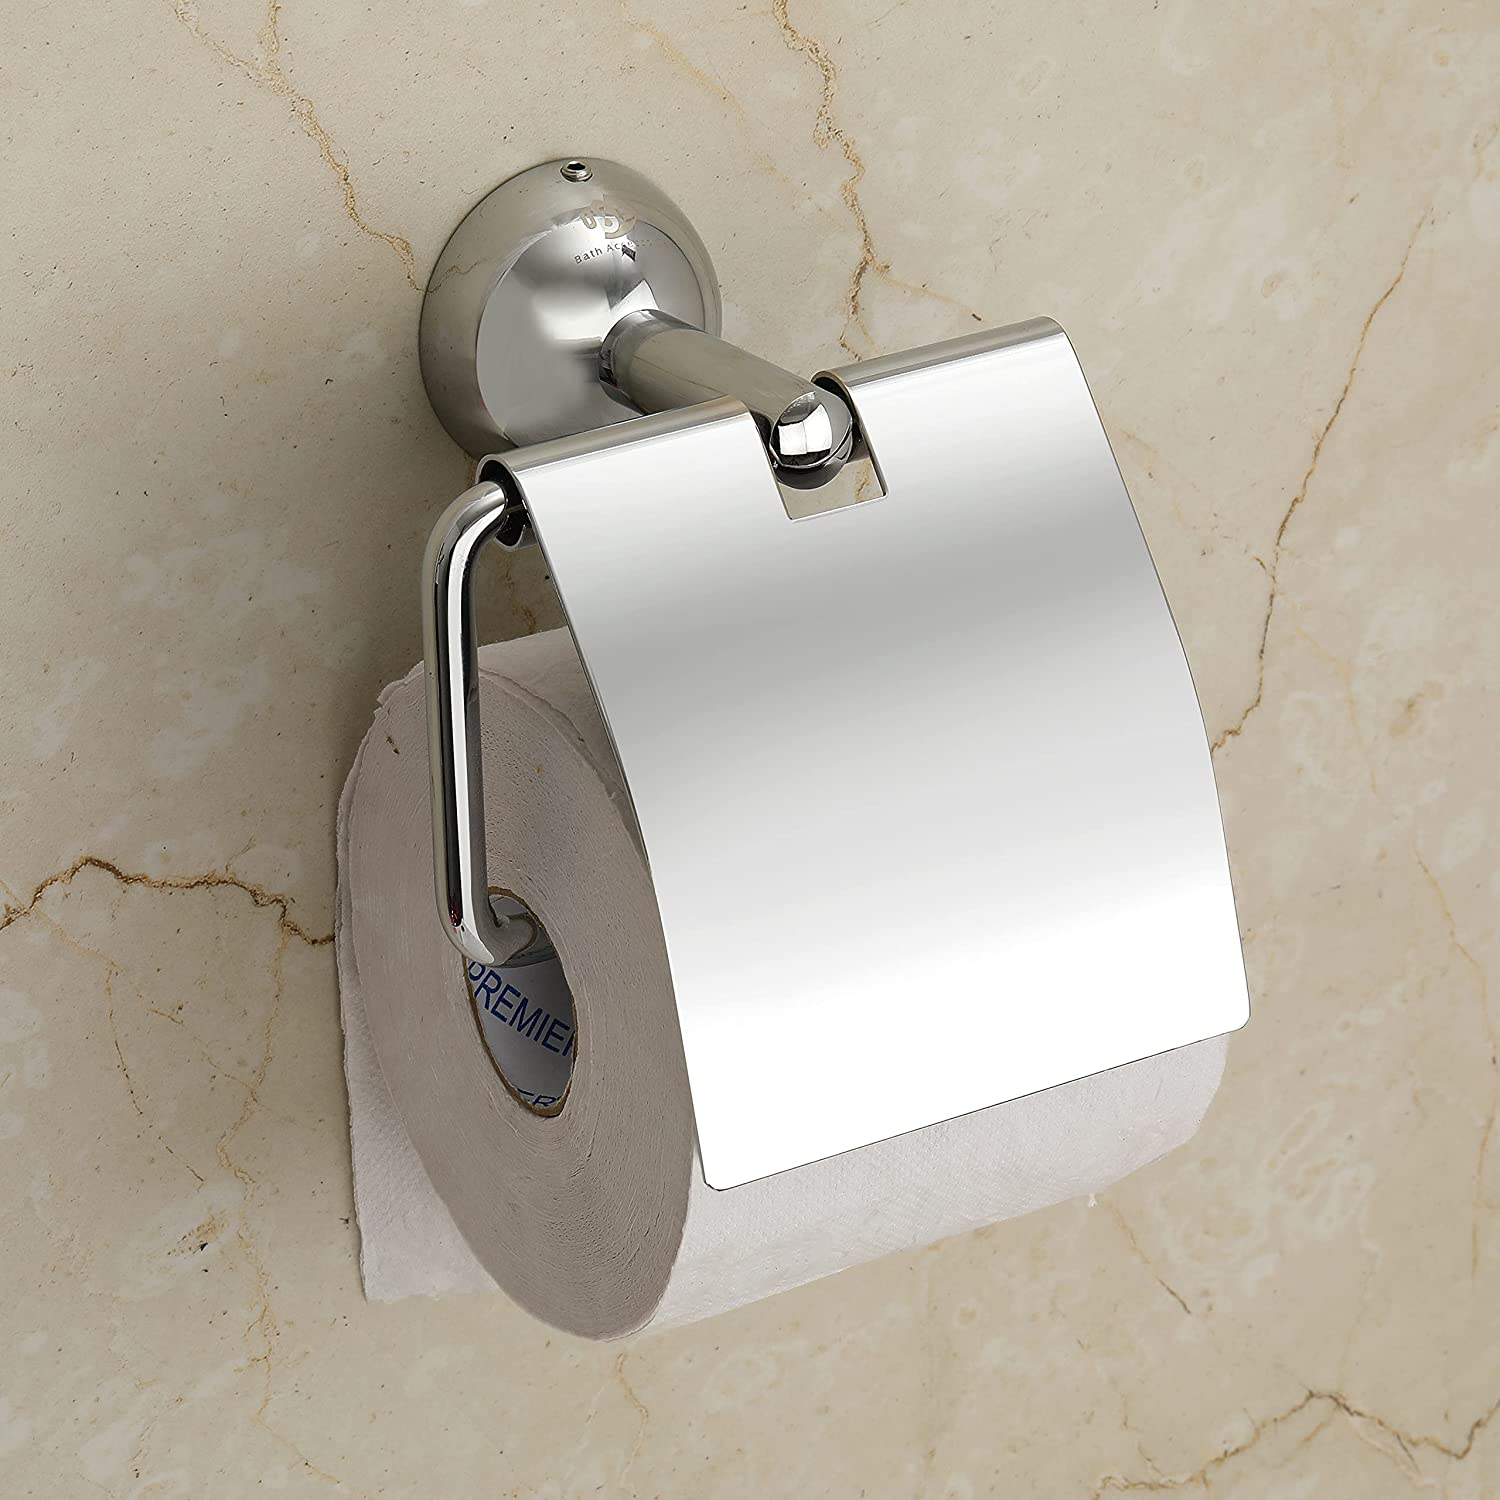 Platinum Stainless Steel 304 Grade Toilet Paper Holder for Bathroom/Toilet Paper Holder Stand- Bathroom Accessories (Chrome Finish)